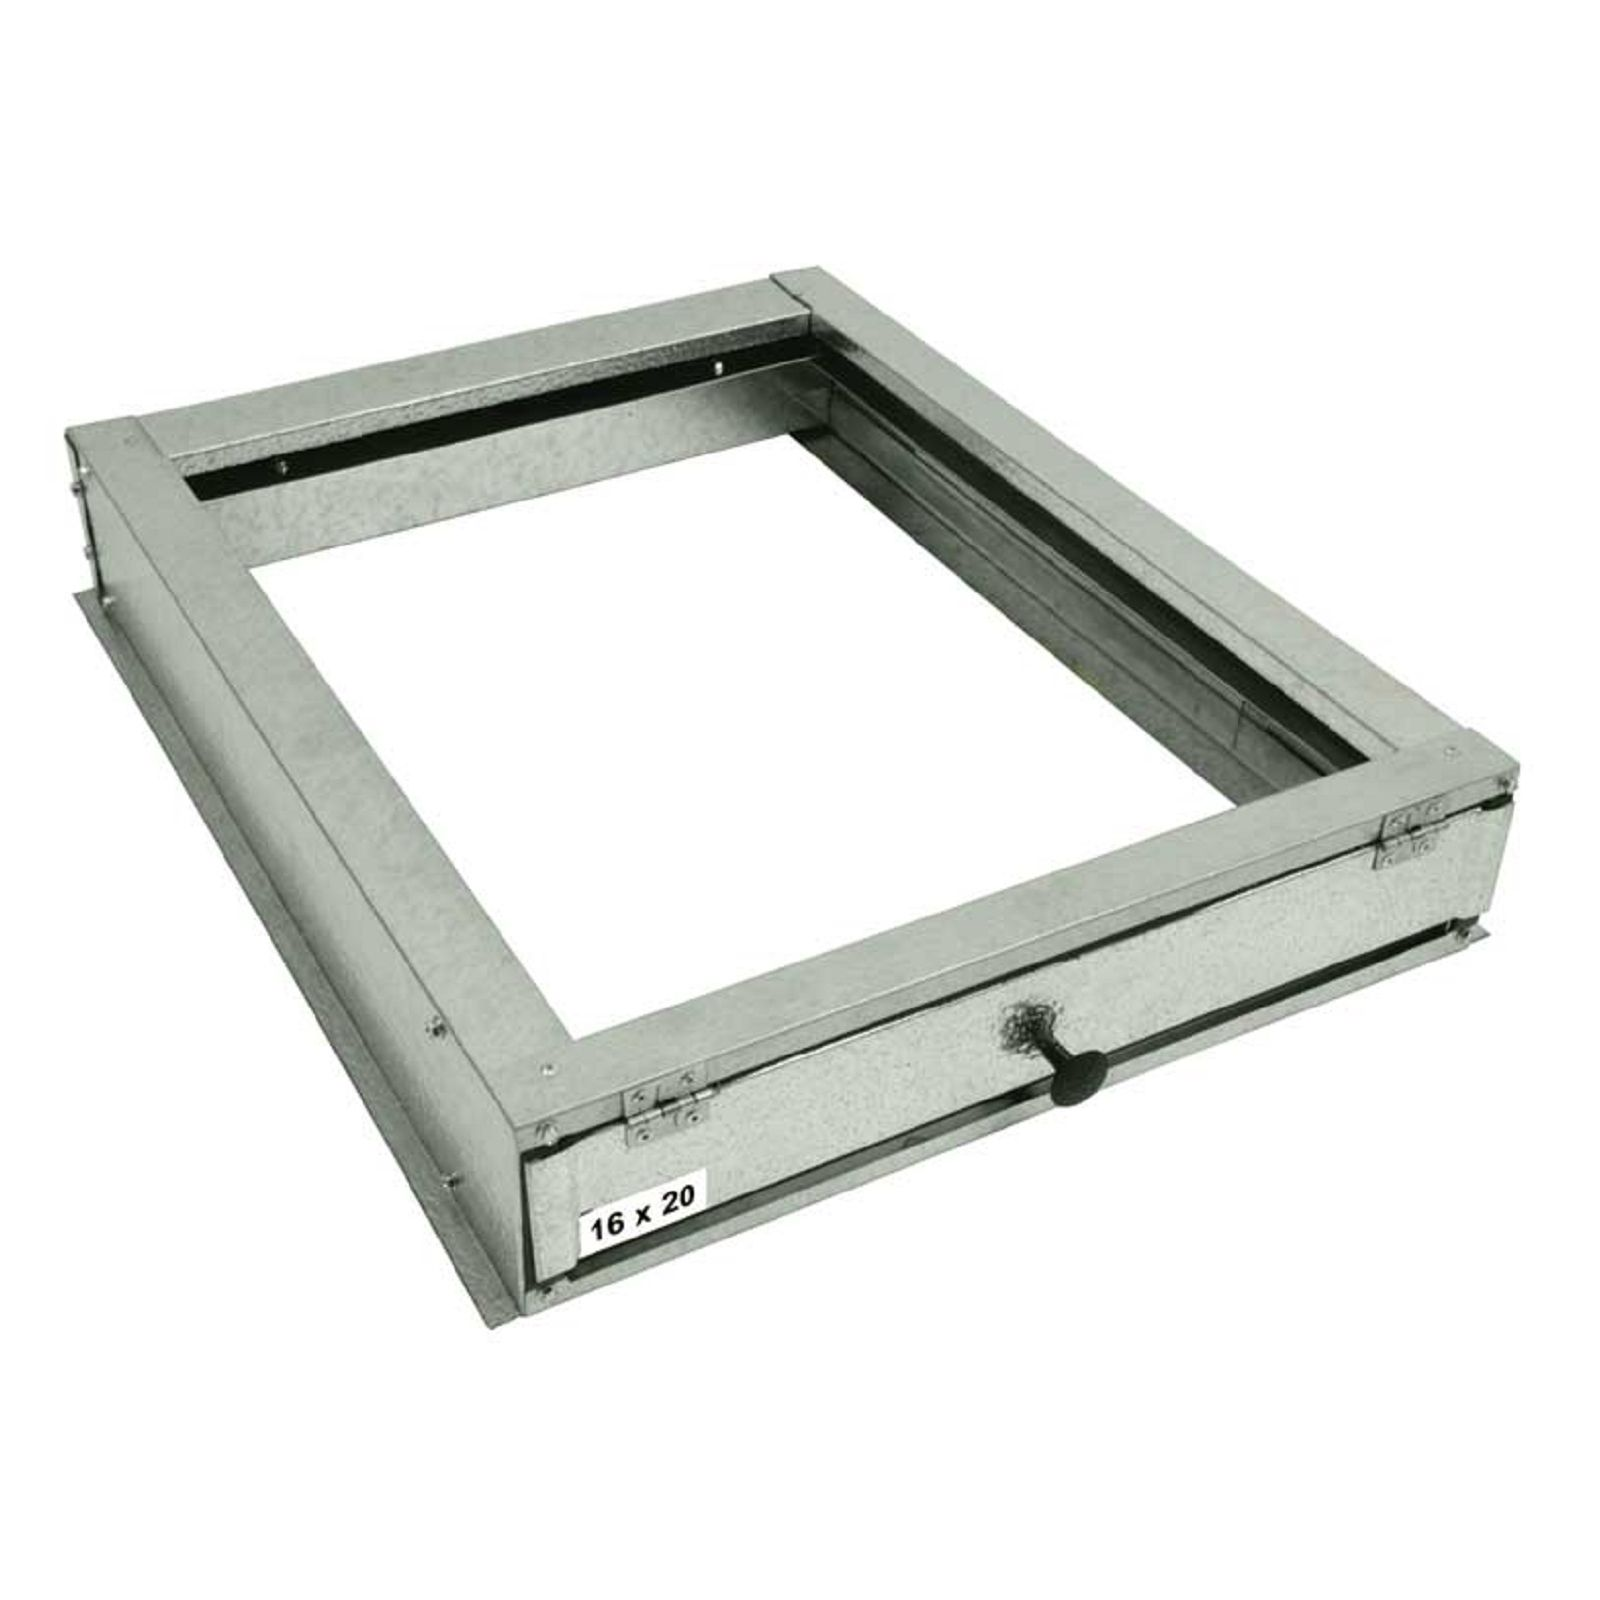 "McDaniel ACE1620-3 - Accommodator/Filter Housing for Electric Furnaces, 16"" X 20"" X 1"" Or 2"" Filter"